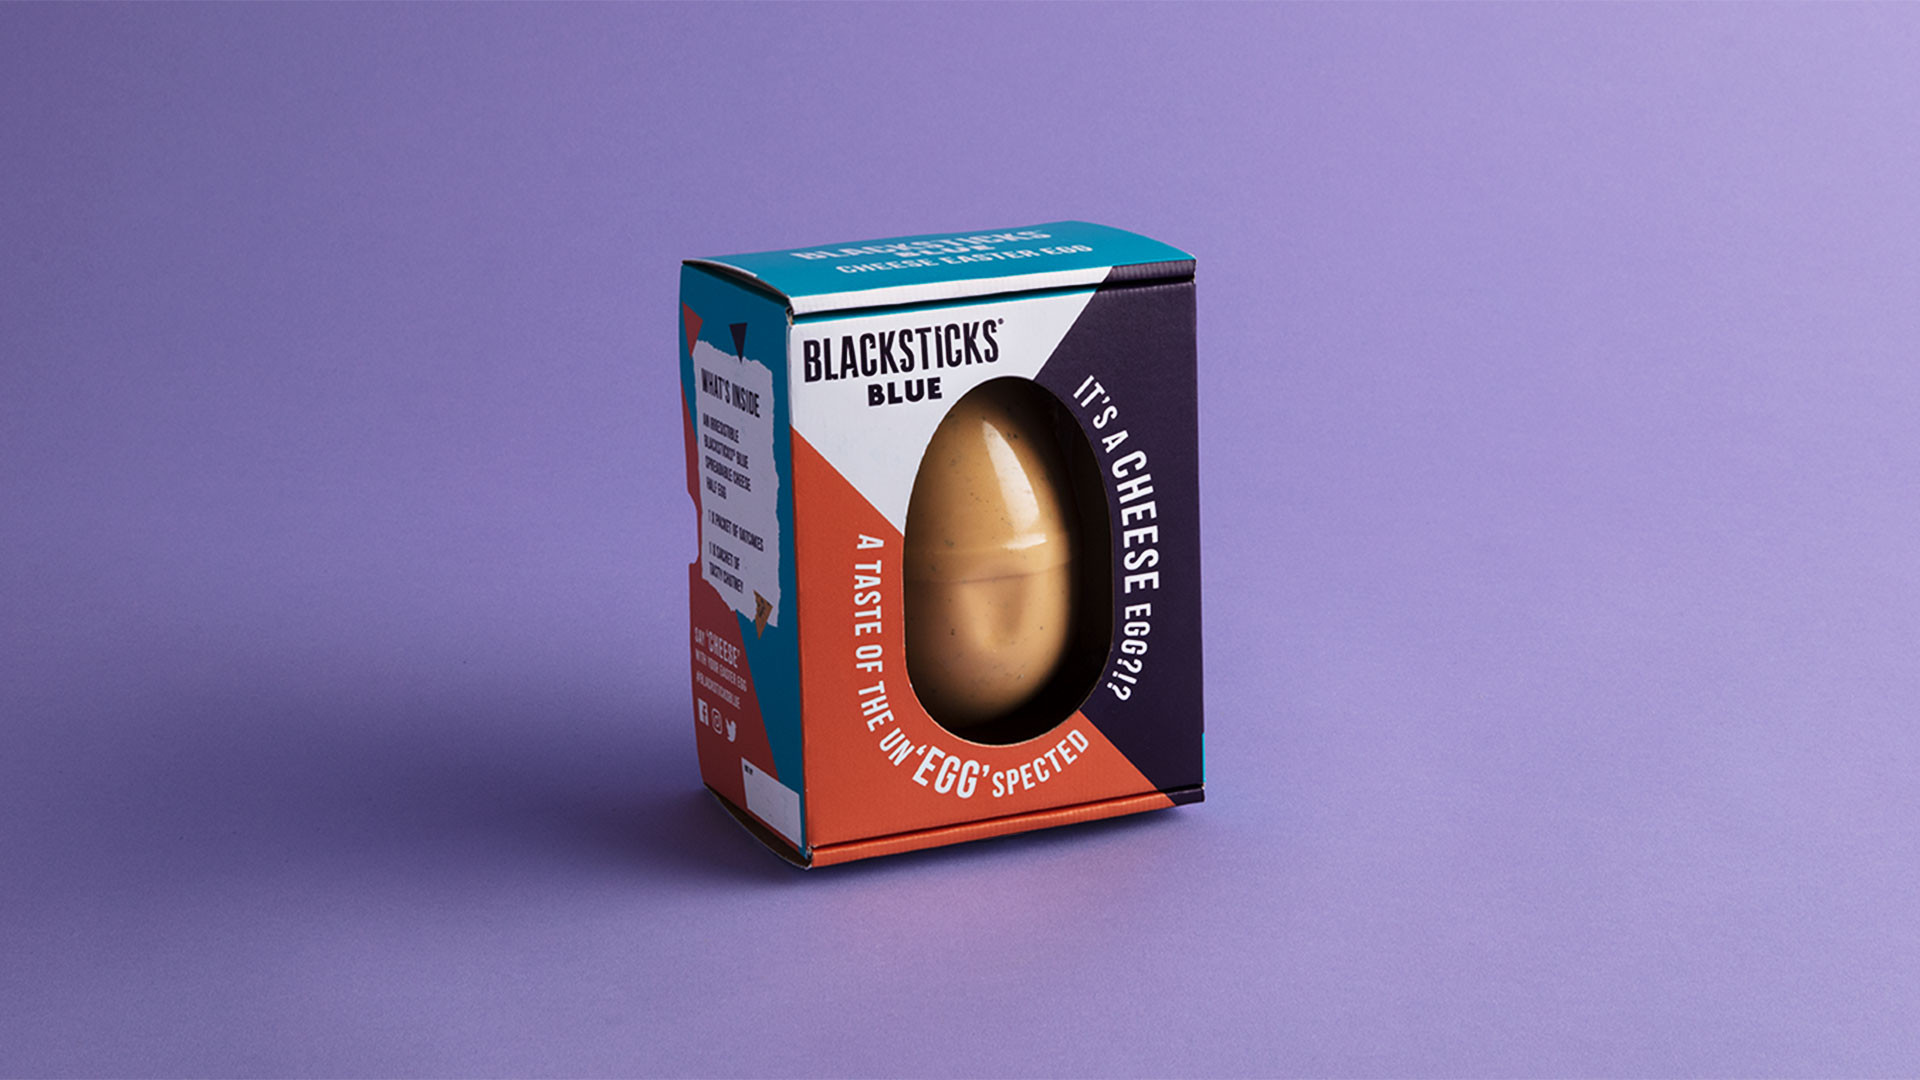 Blacksticks Blue blue cheese Easter egg